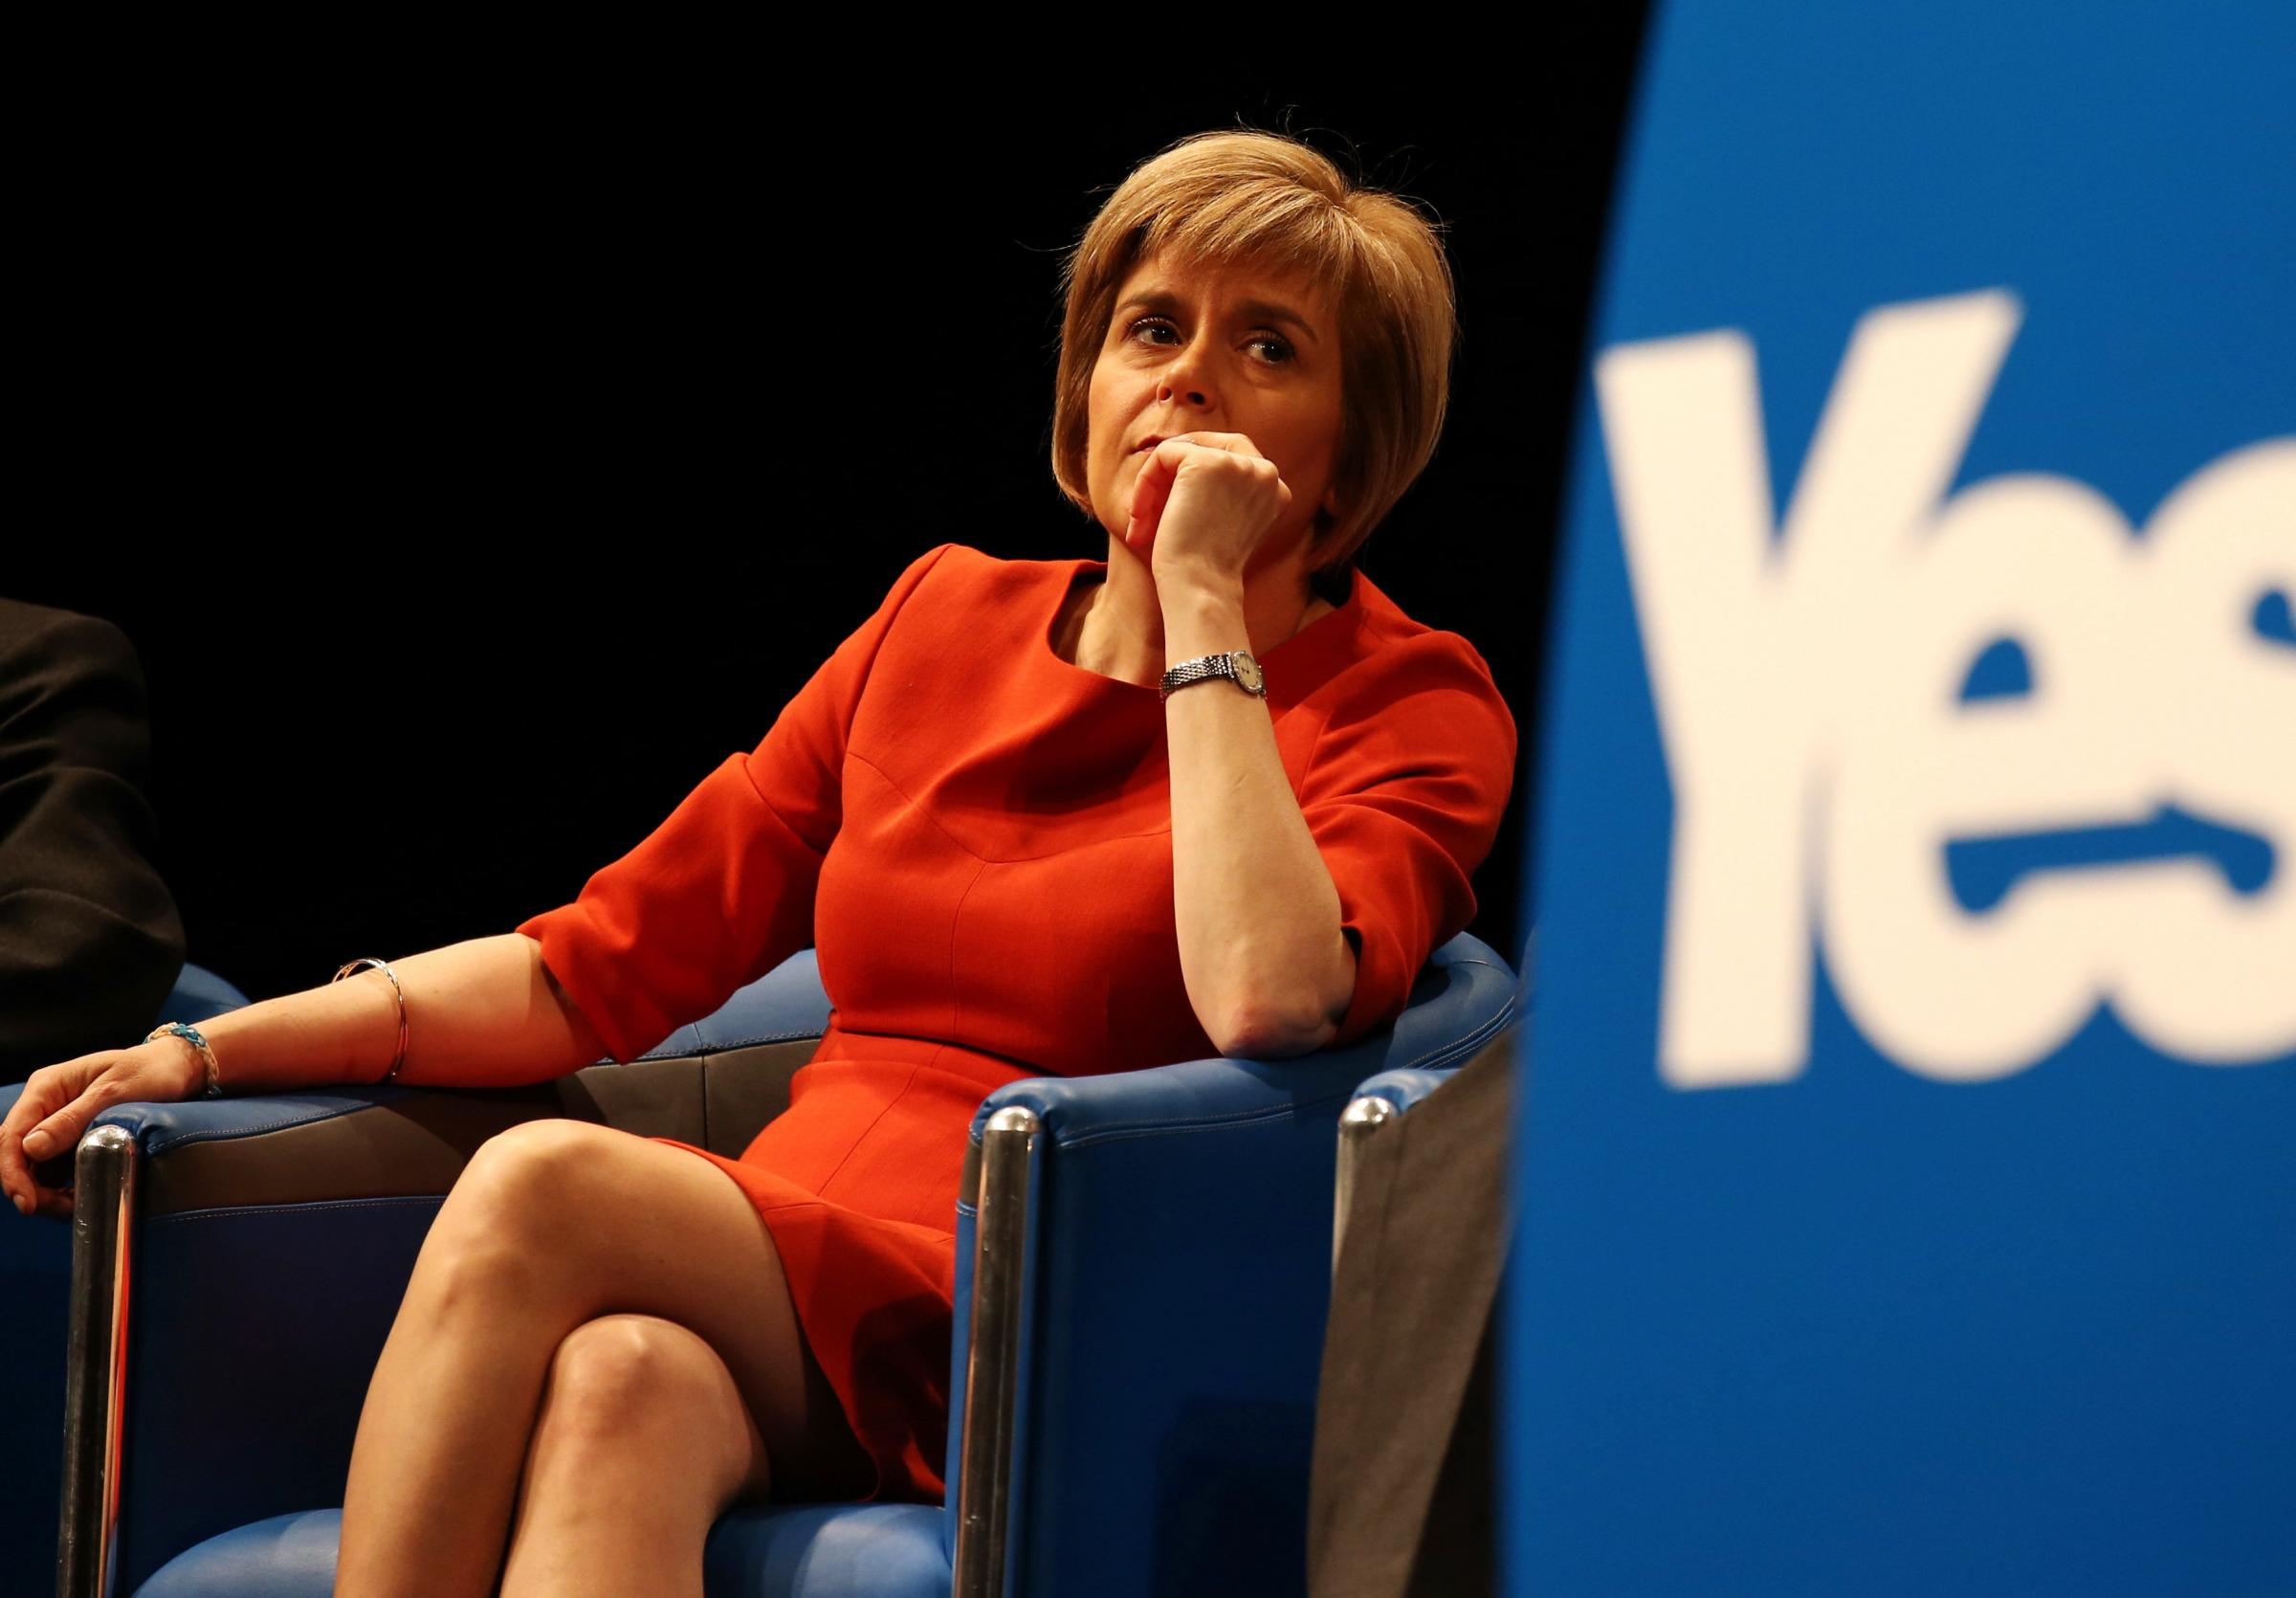 Scotland should be independent 'as soon as possible' but is not focus right now, says Nicola Sturgeon